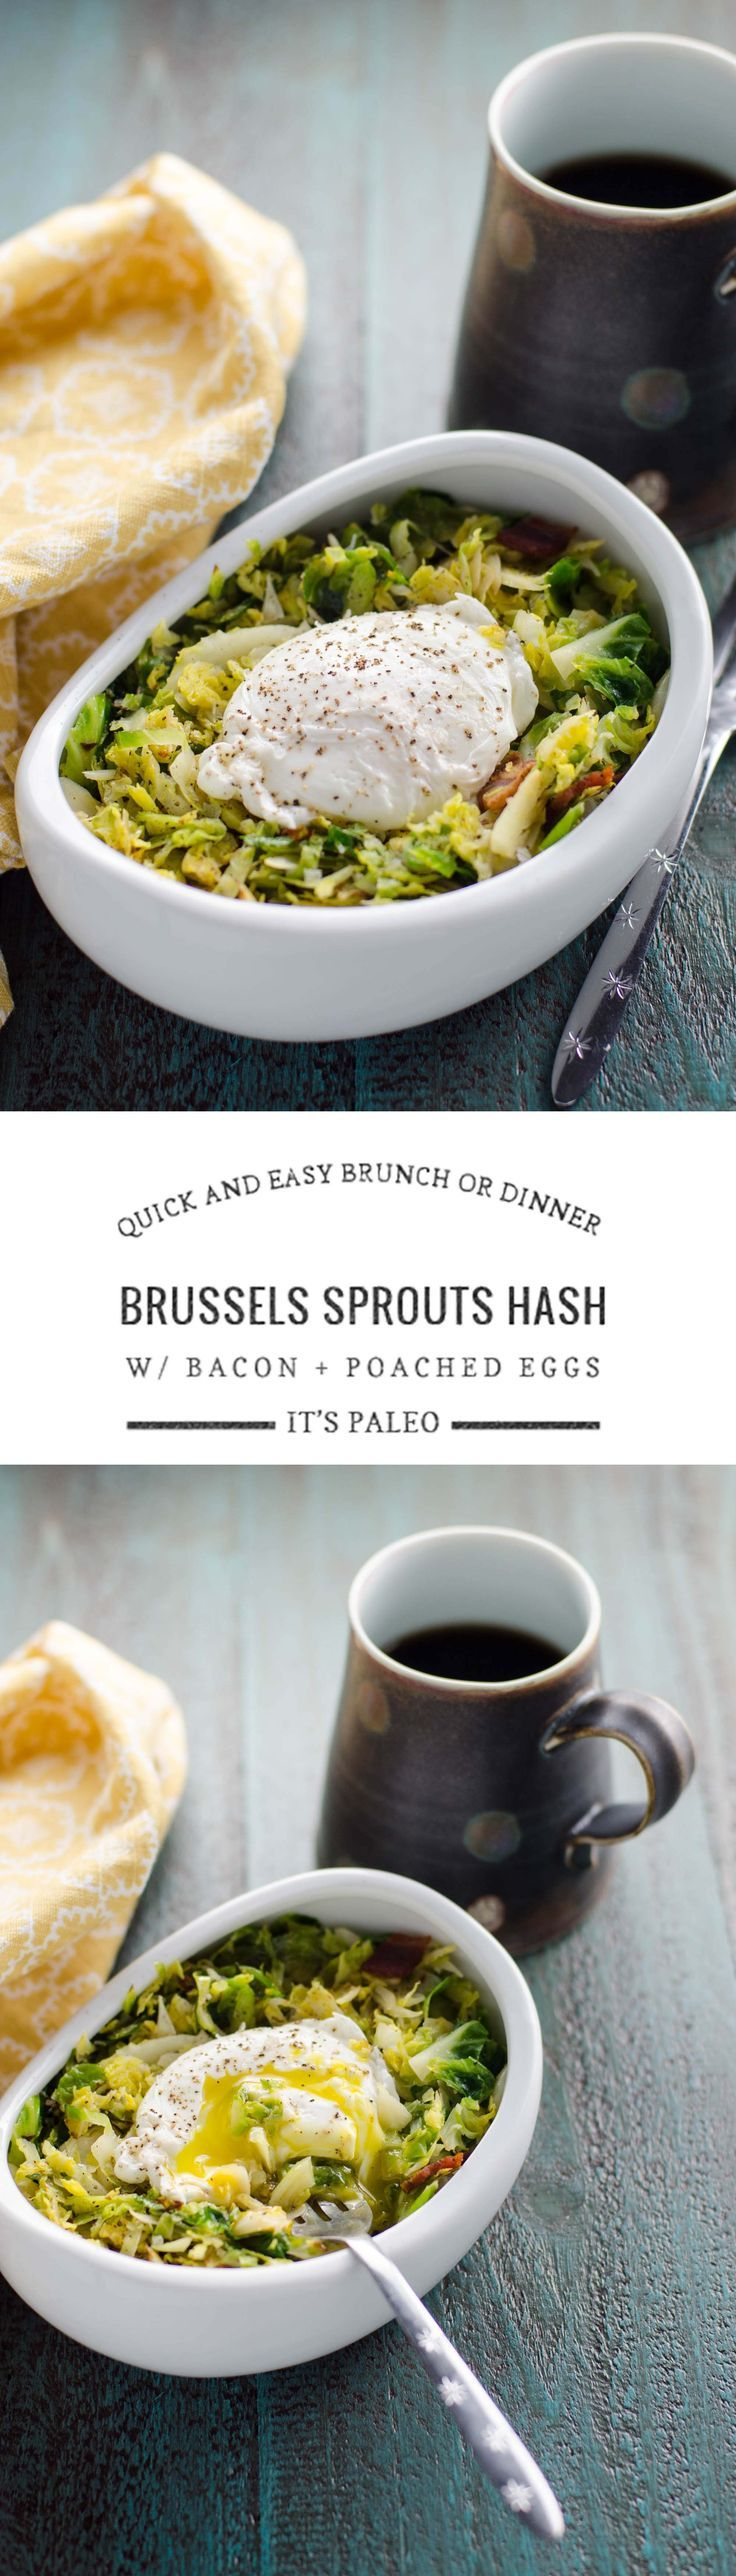 This quick and easy Brussels sprouts hash with bacon and poached eggs makes an equally good breakfast, lunch or dinner. Gluten-free, grain-free and paleo.